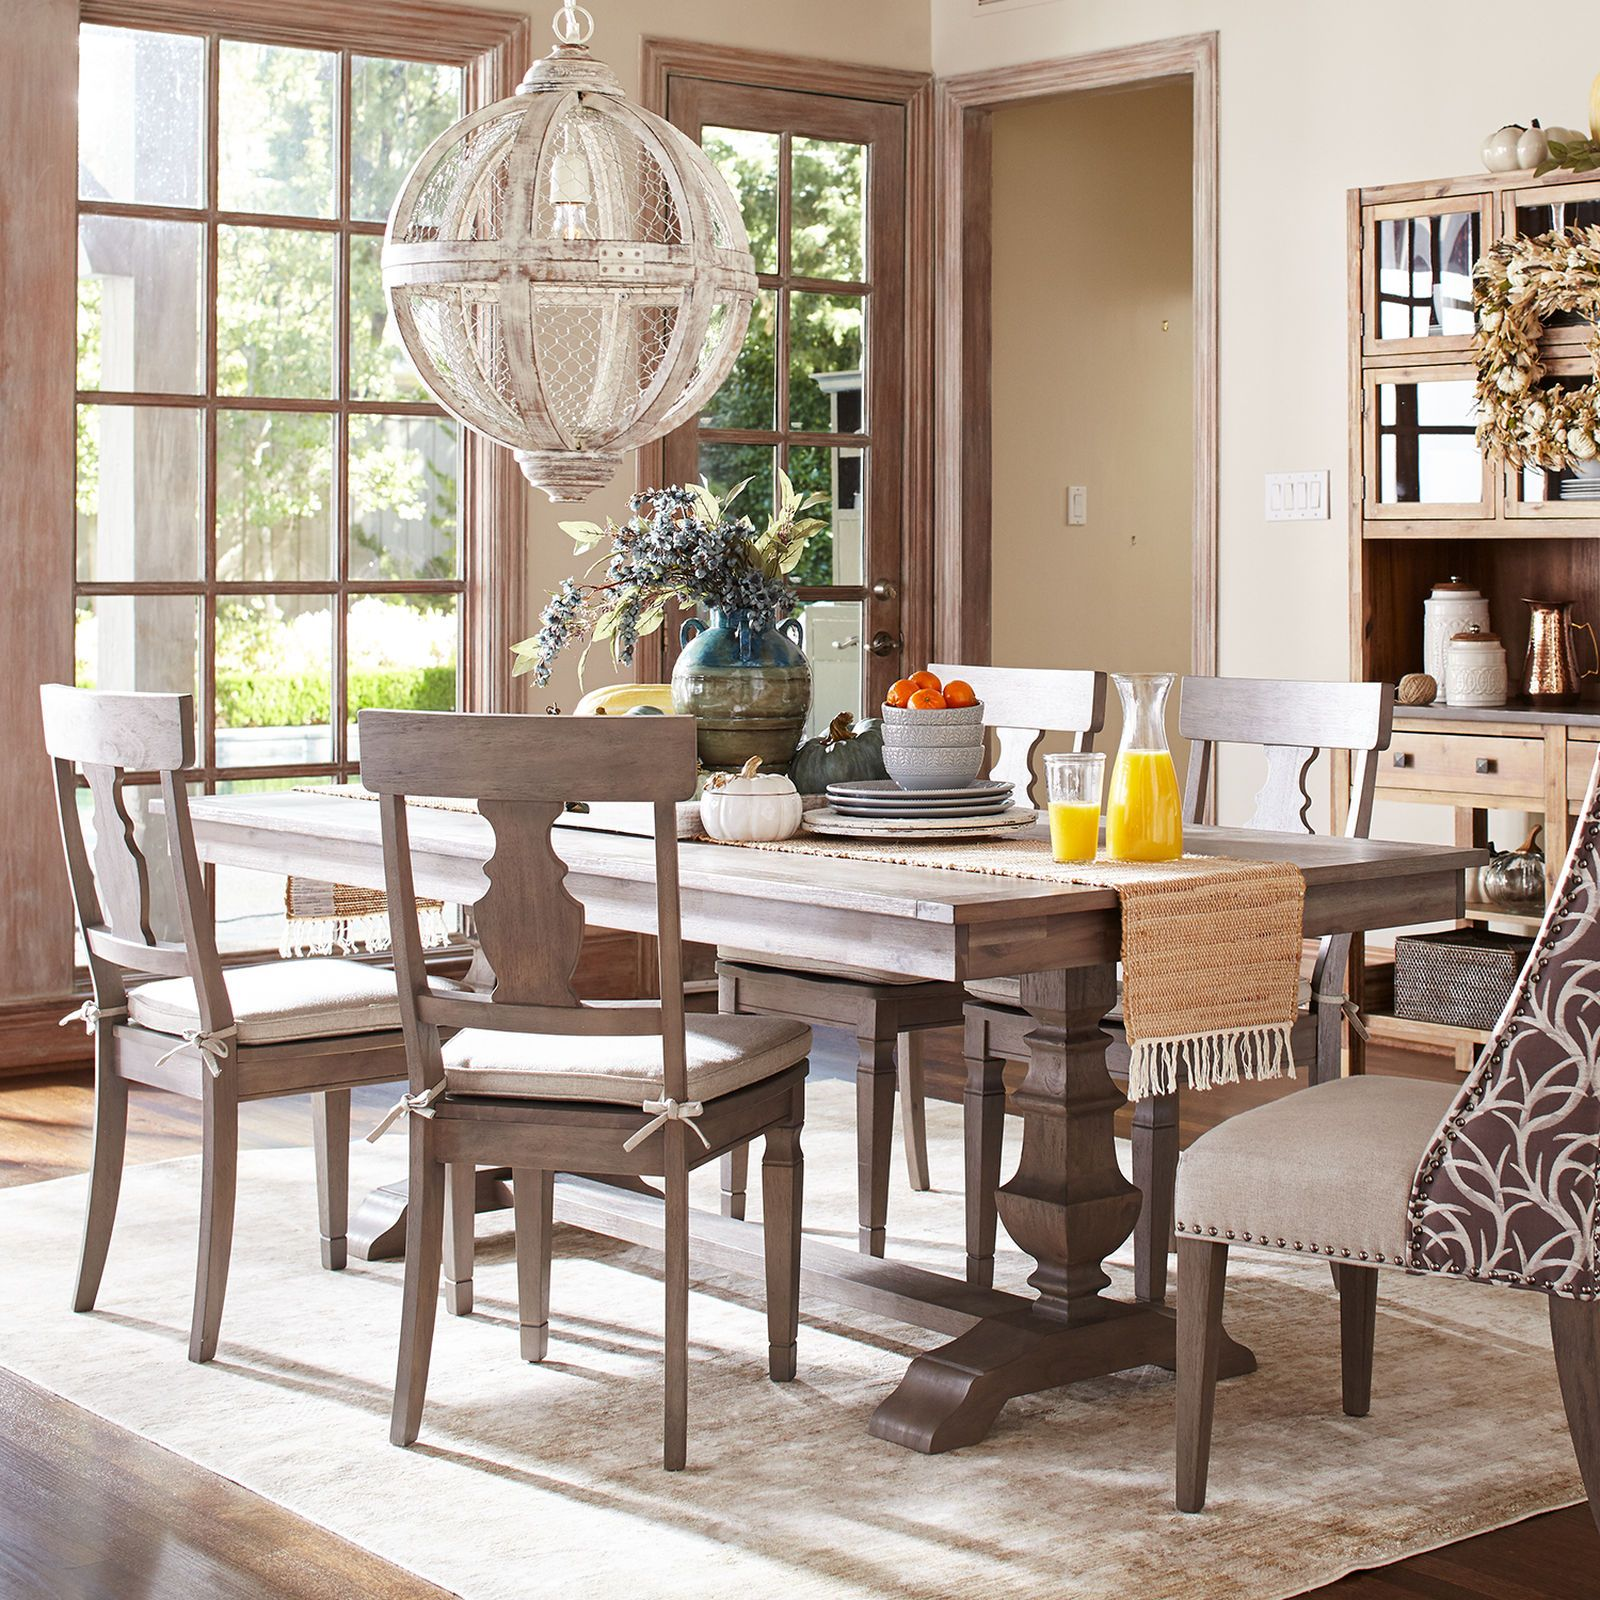 Traditional Meets Subtle Rustic For Casual Or Formal Dining Crafted Of Hardwoods Our Handsome Farmhouse Dining Chairs Grey Dining Tables Rustic Dining Chairs